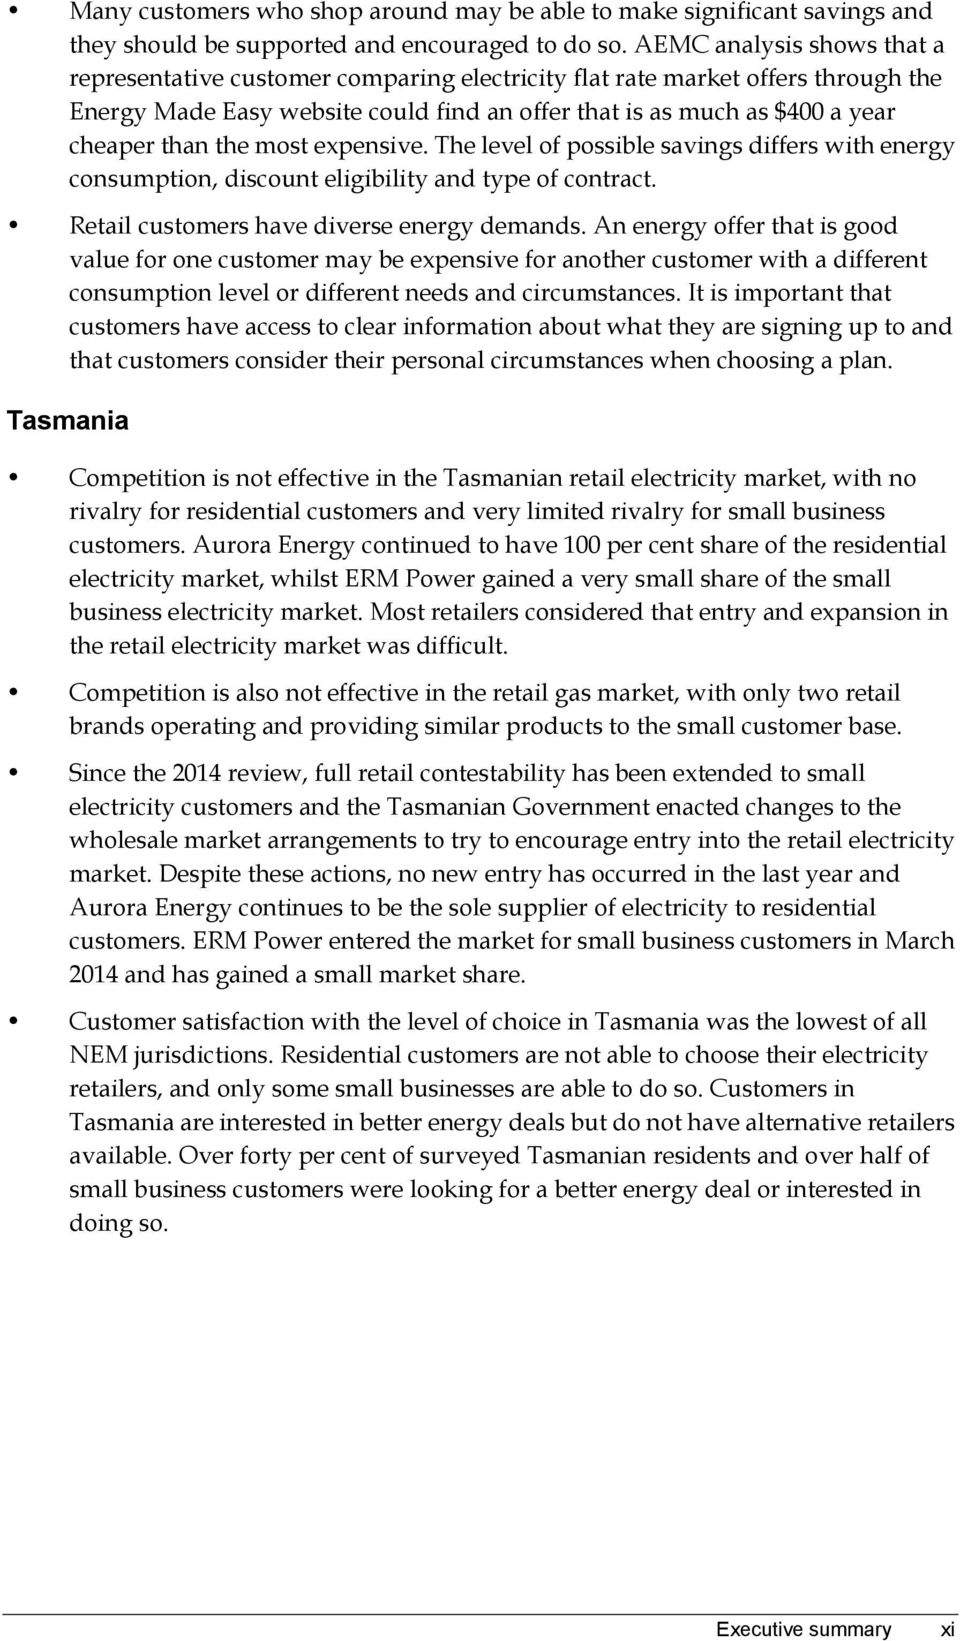 the most expensive. The level of possible savings differs with energy consumption, discount eligibility and type of contract. Retail customers have diverse energy demands.